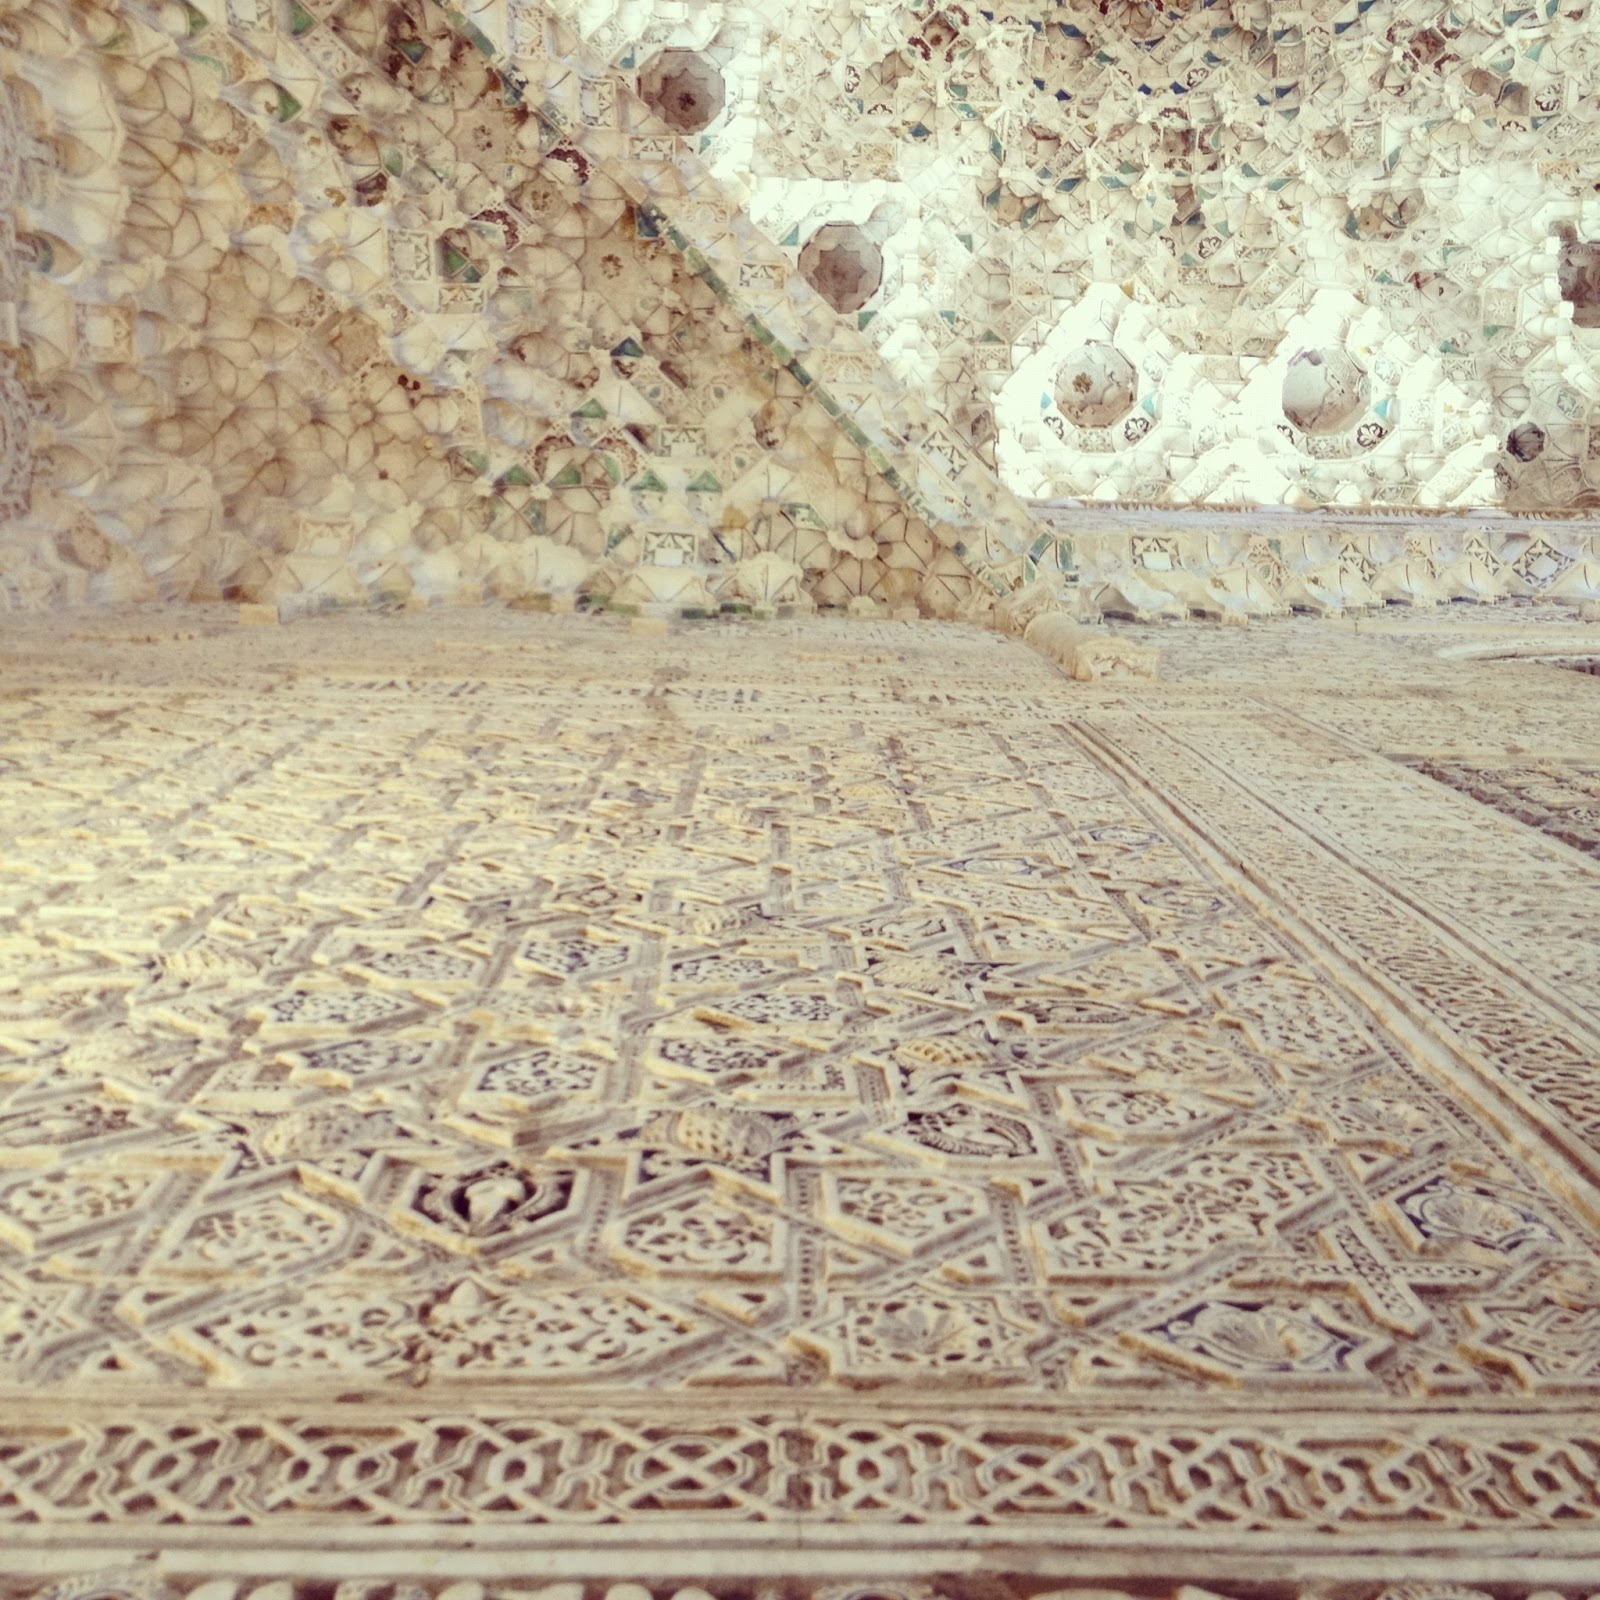 The Alhambra: Layers of Beauty and Architectural History